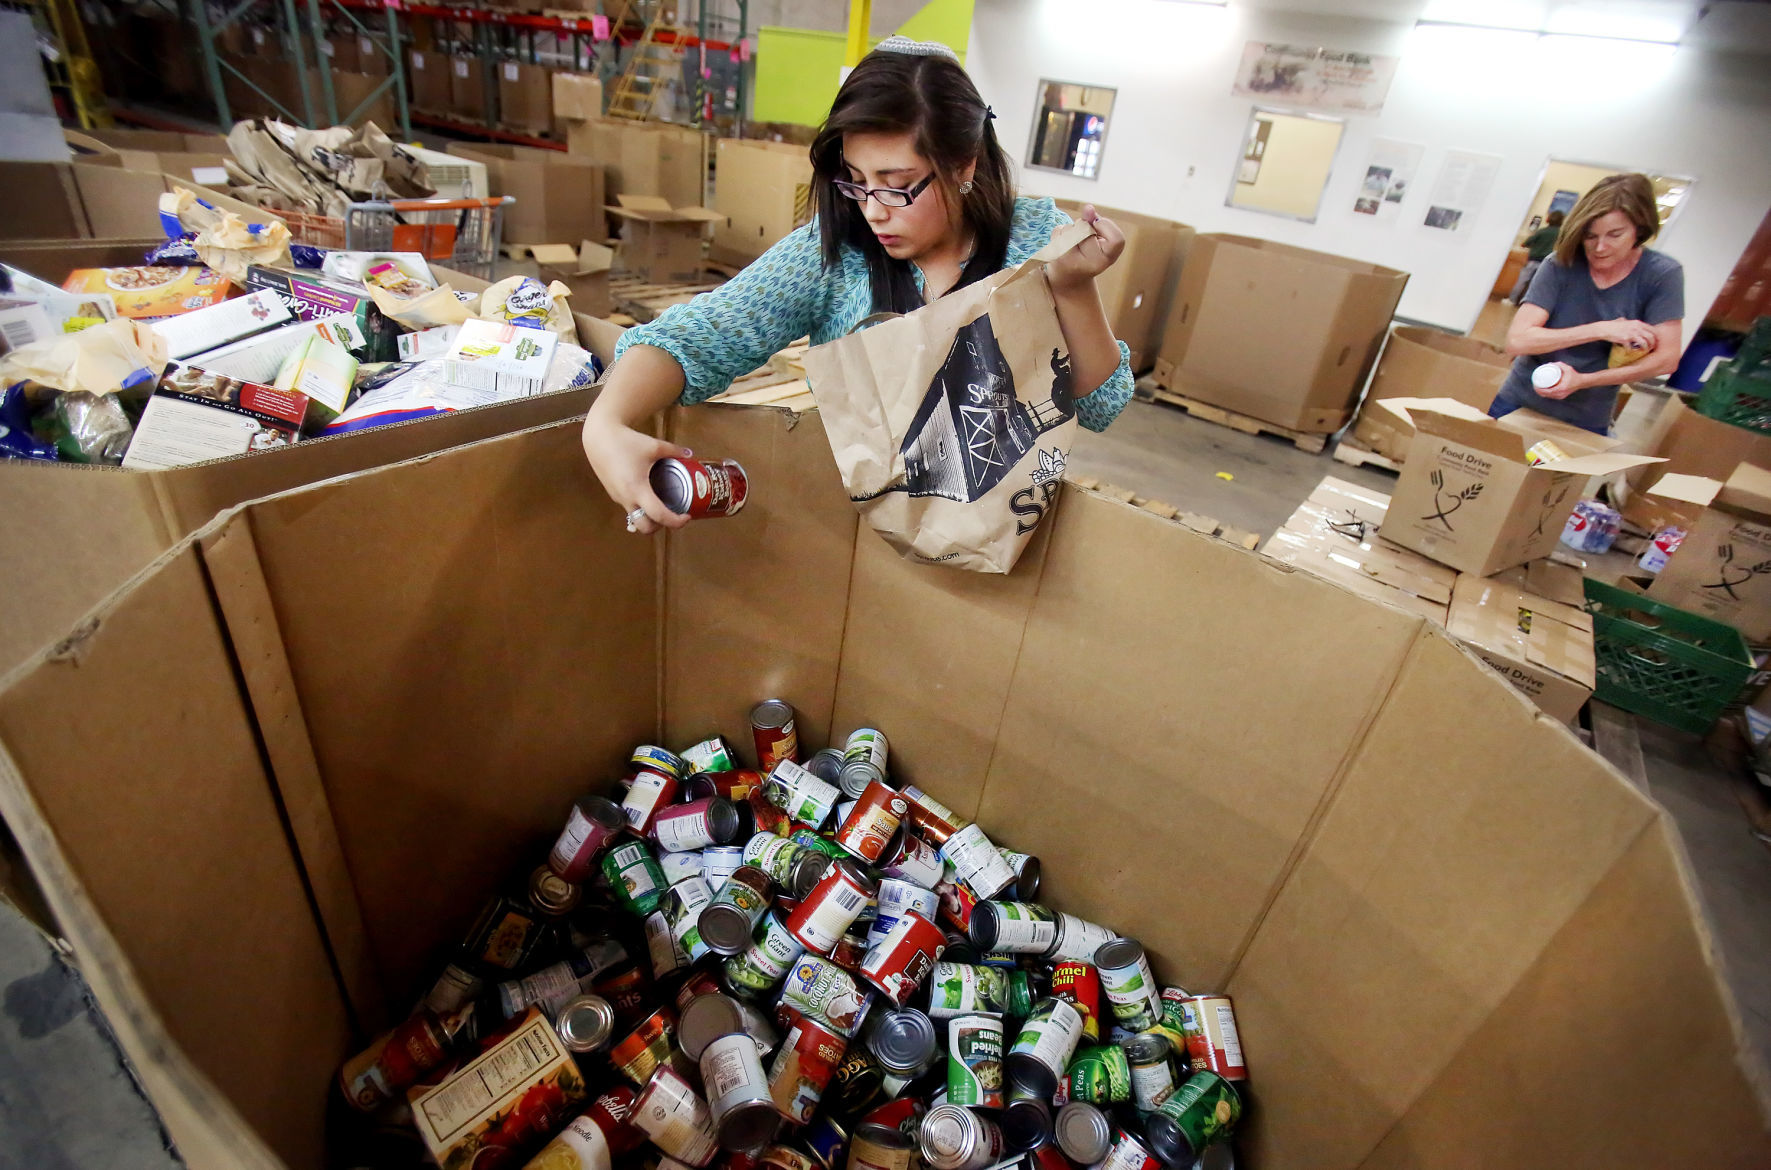 Giving is important to most Pima County residents during the holidays, poll finds | Tucson.com